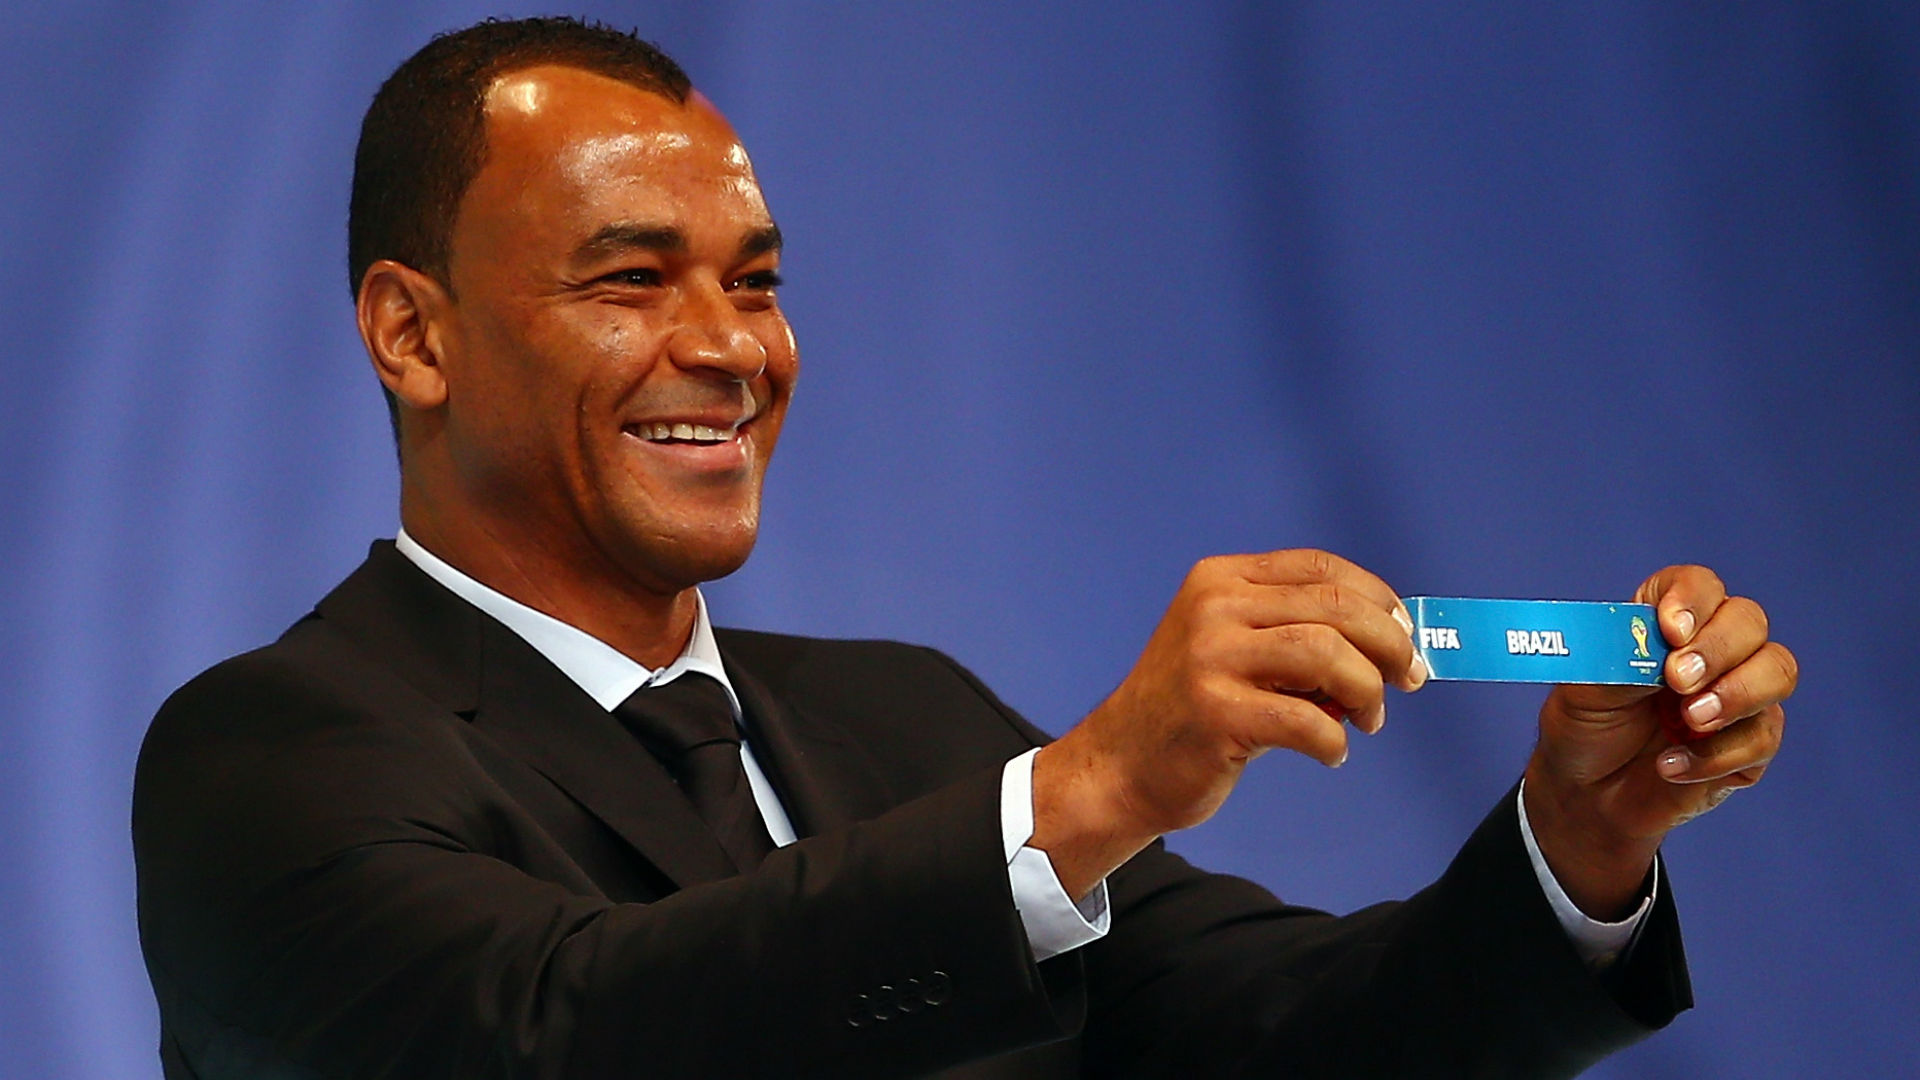 Cafu draw Brazil World Cup 2014